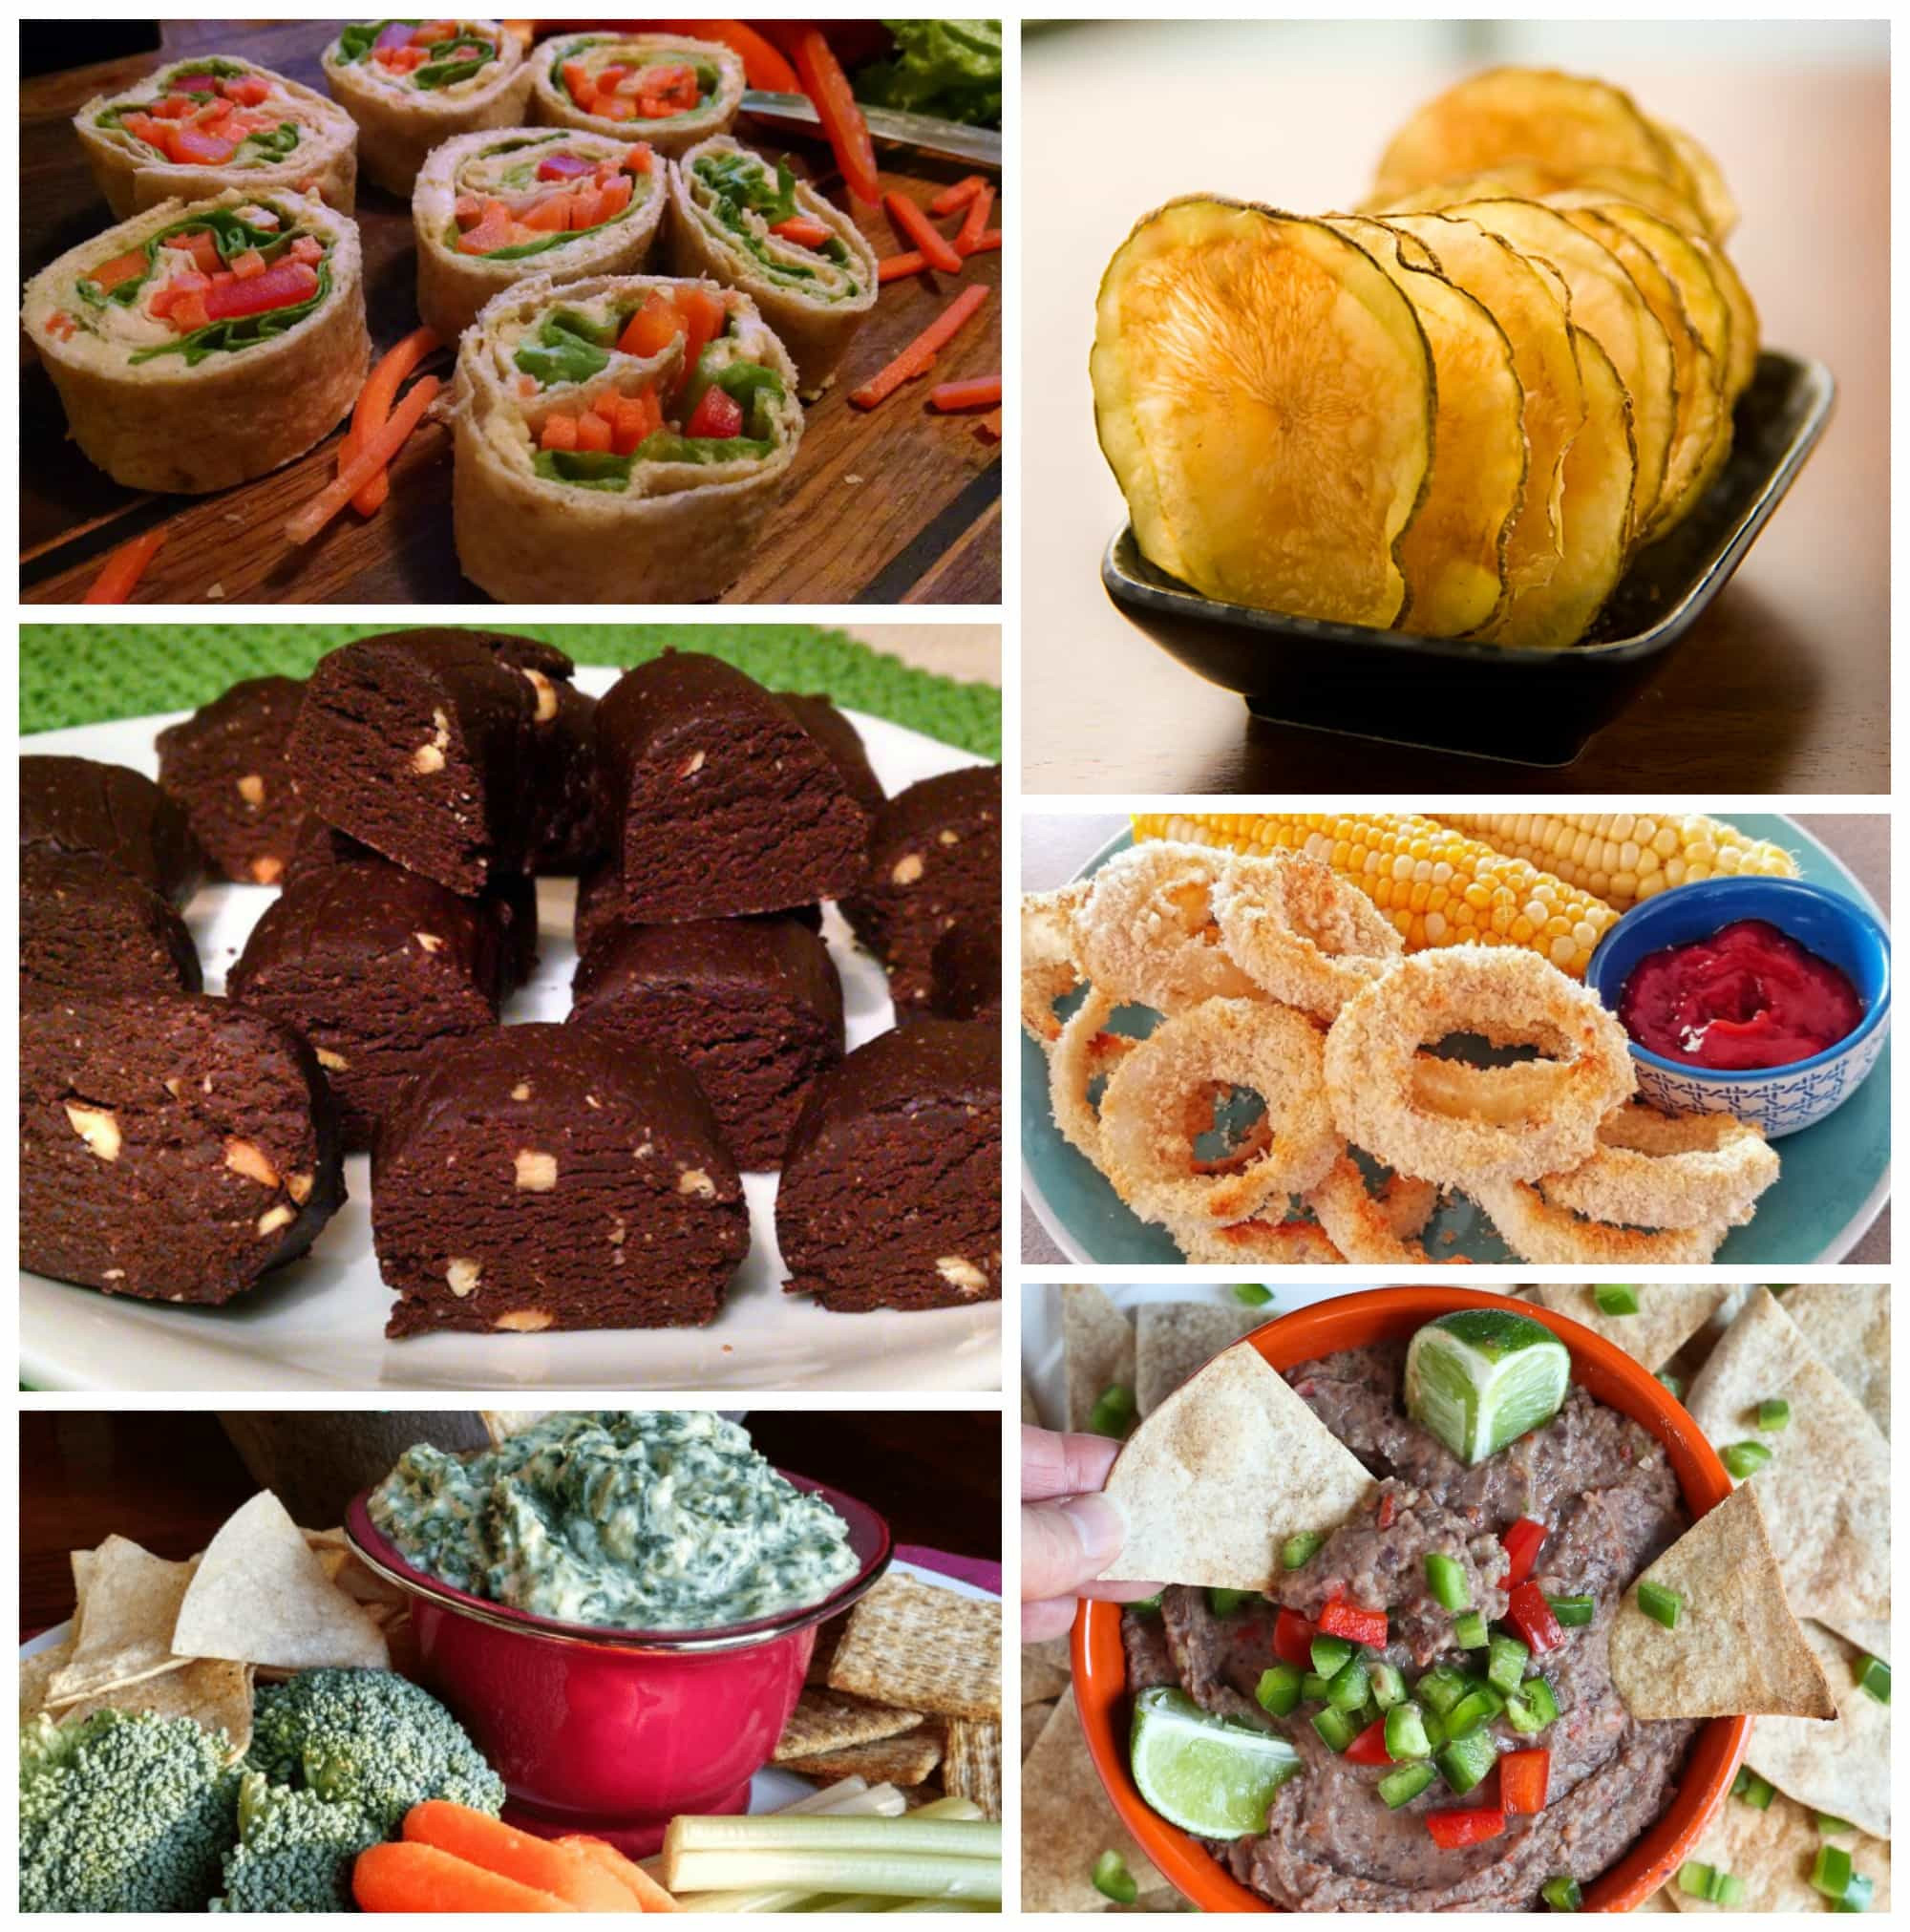 Healthy Vegan Snacks  17 Healthy Vegan Party Snack Ideas